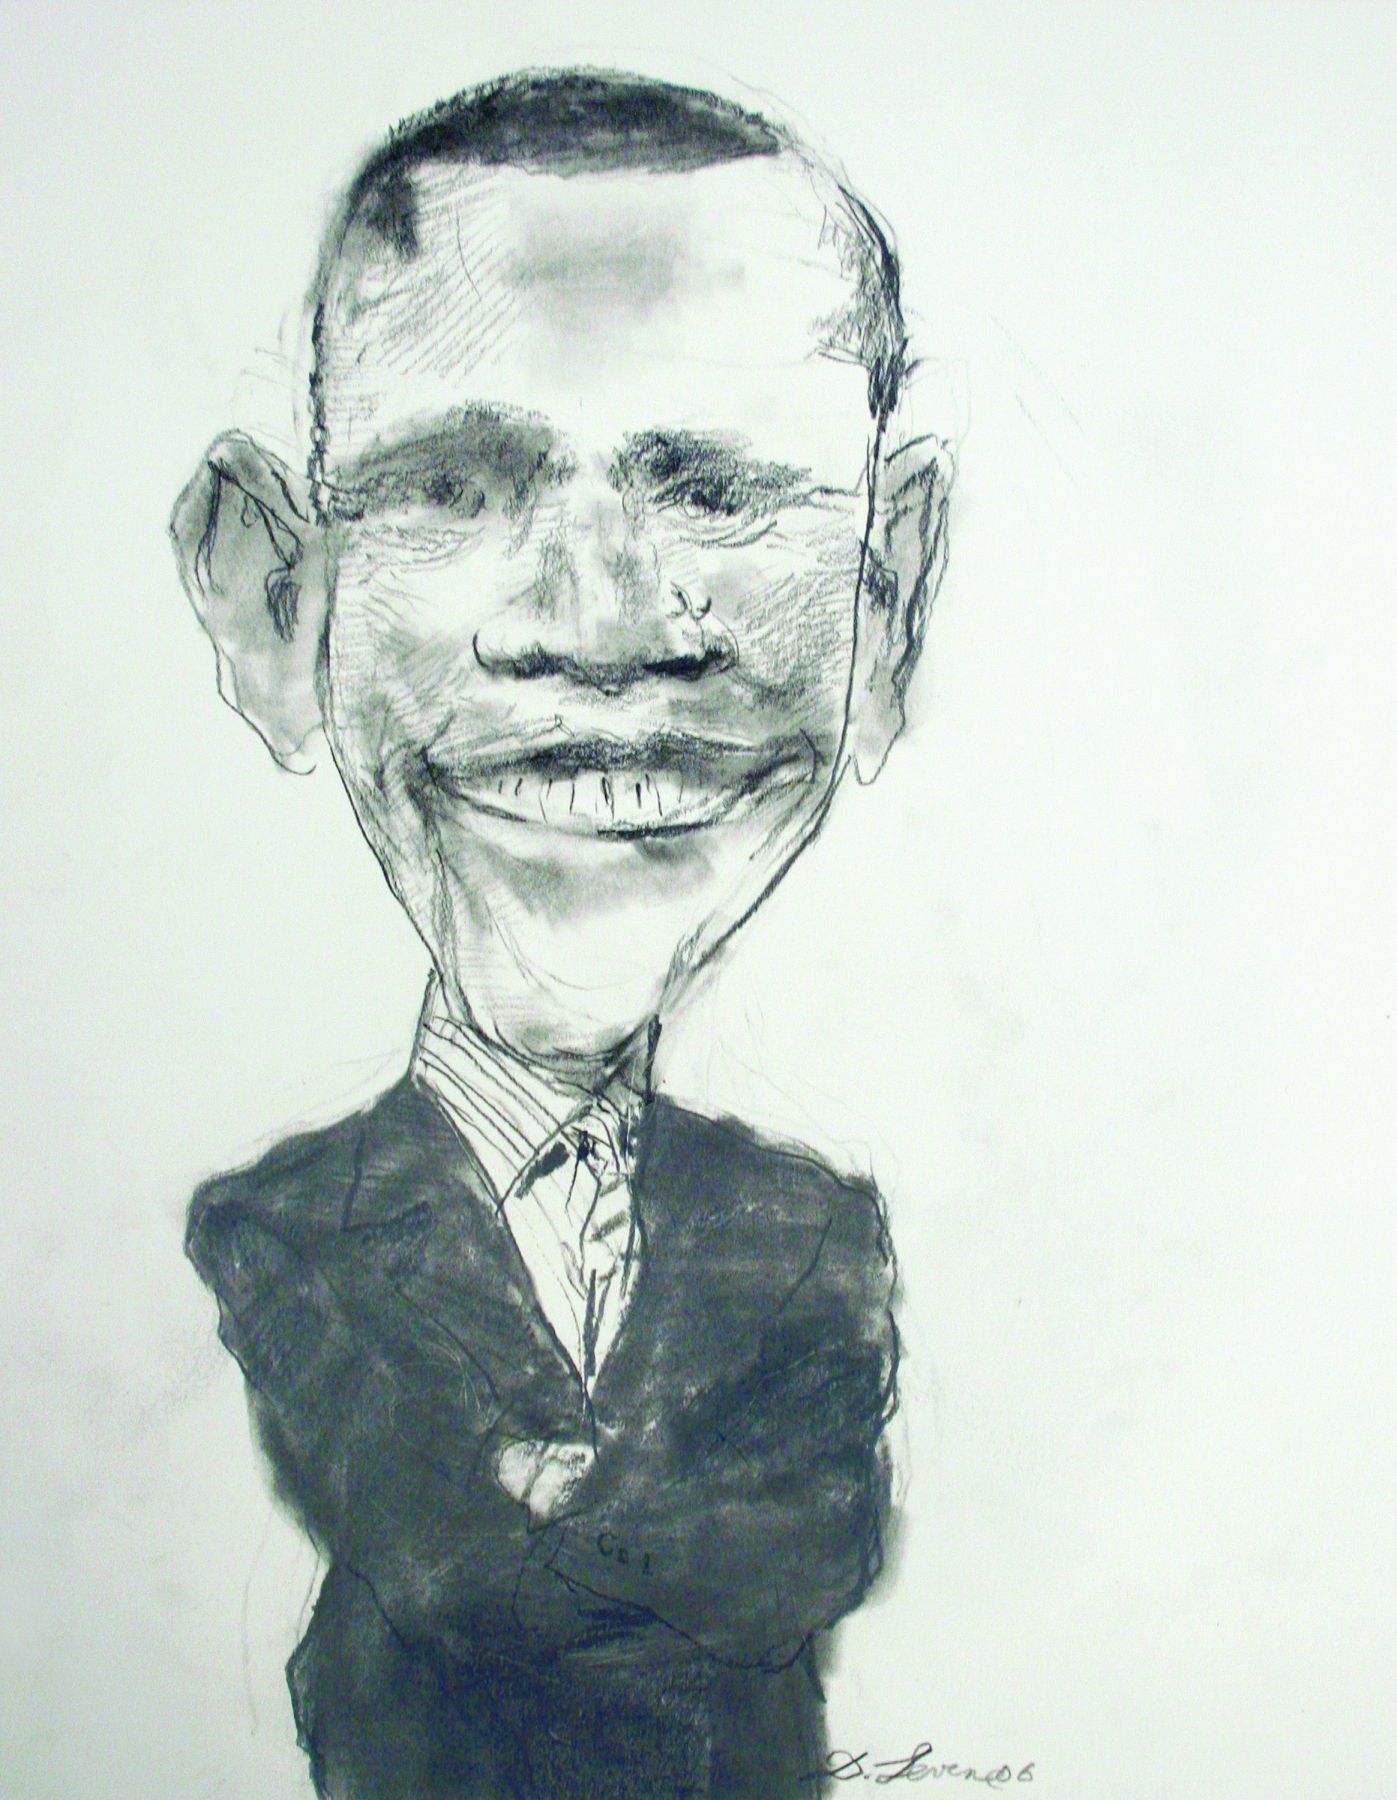 David Levine, Senator Barack Obama (SOLD), 2006, graphite on paper, 13 3/4 x 11 inches